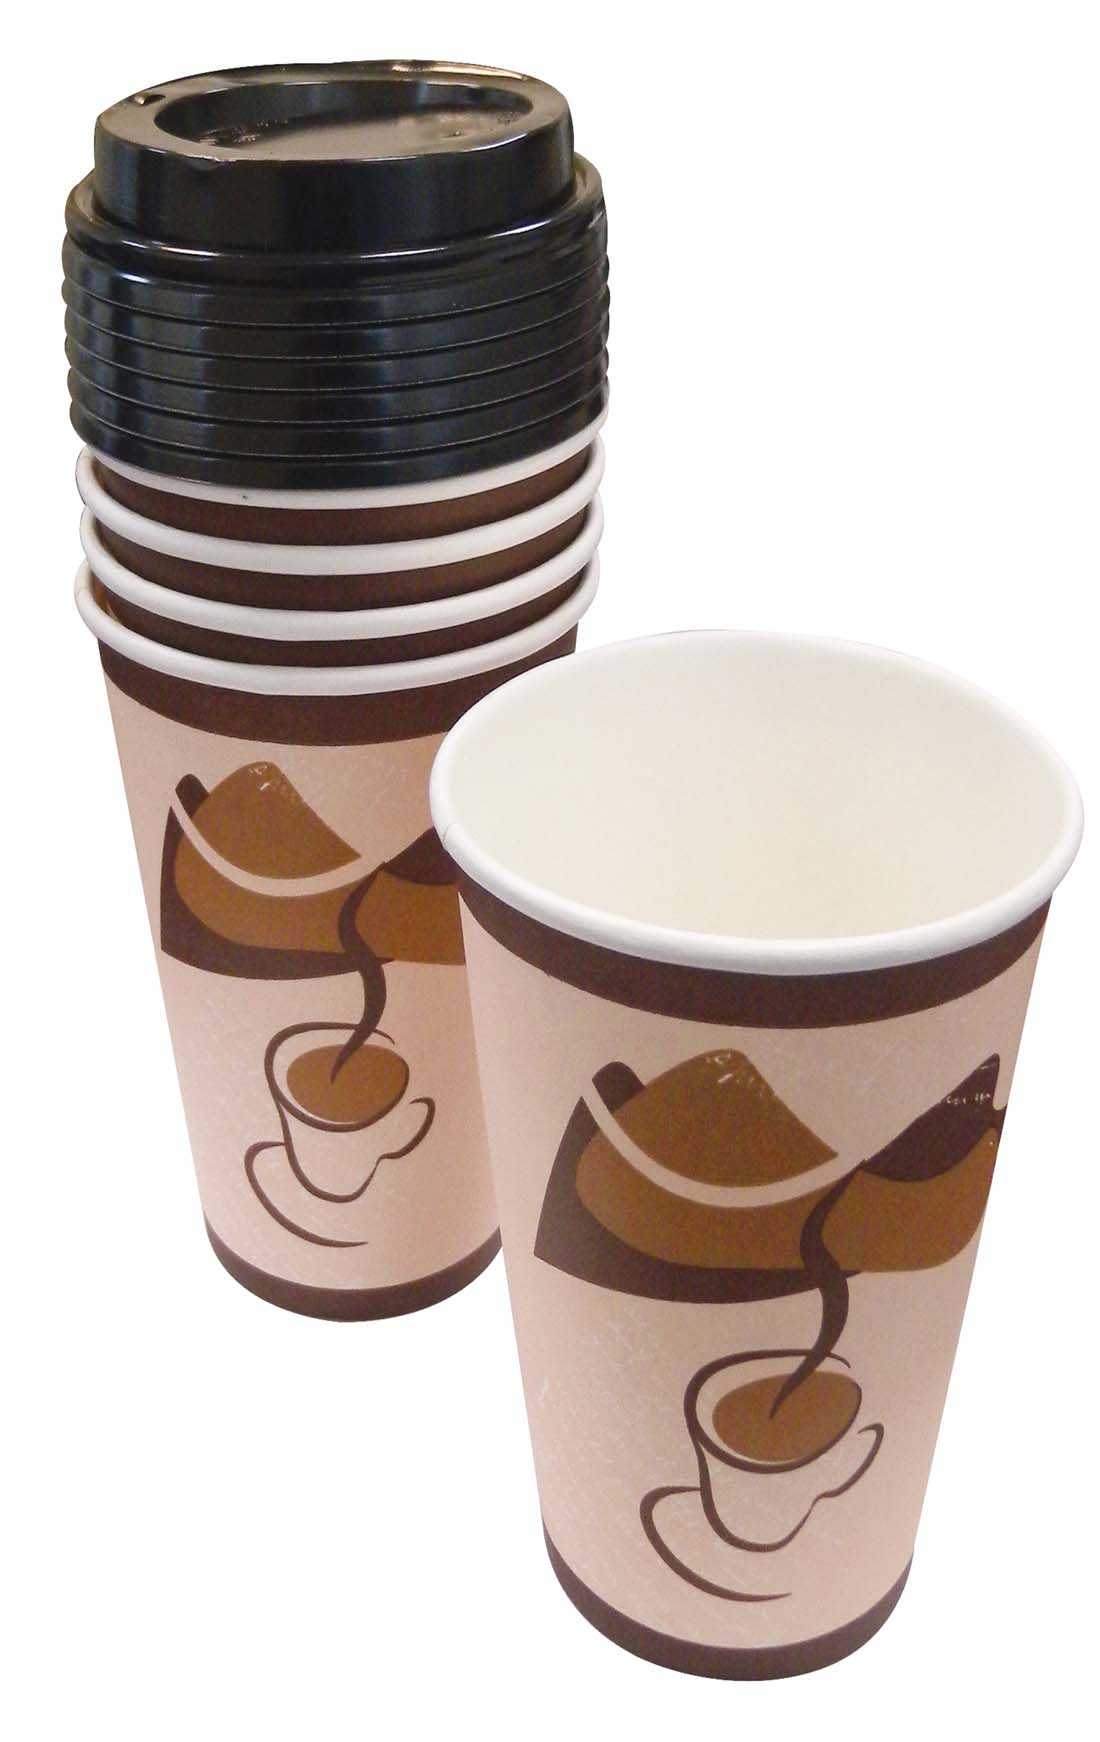 View HOT CUP WITH LID 10 PK 16 OZ - 5 CUPS + 5 LIDS